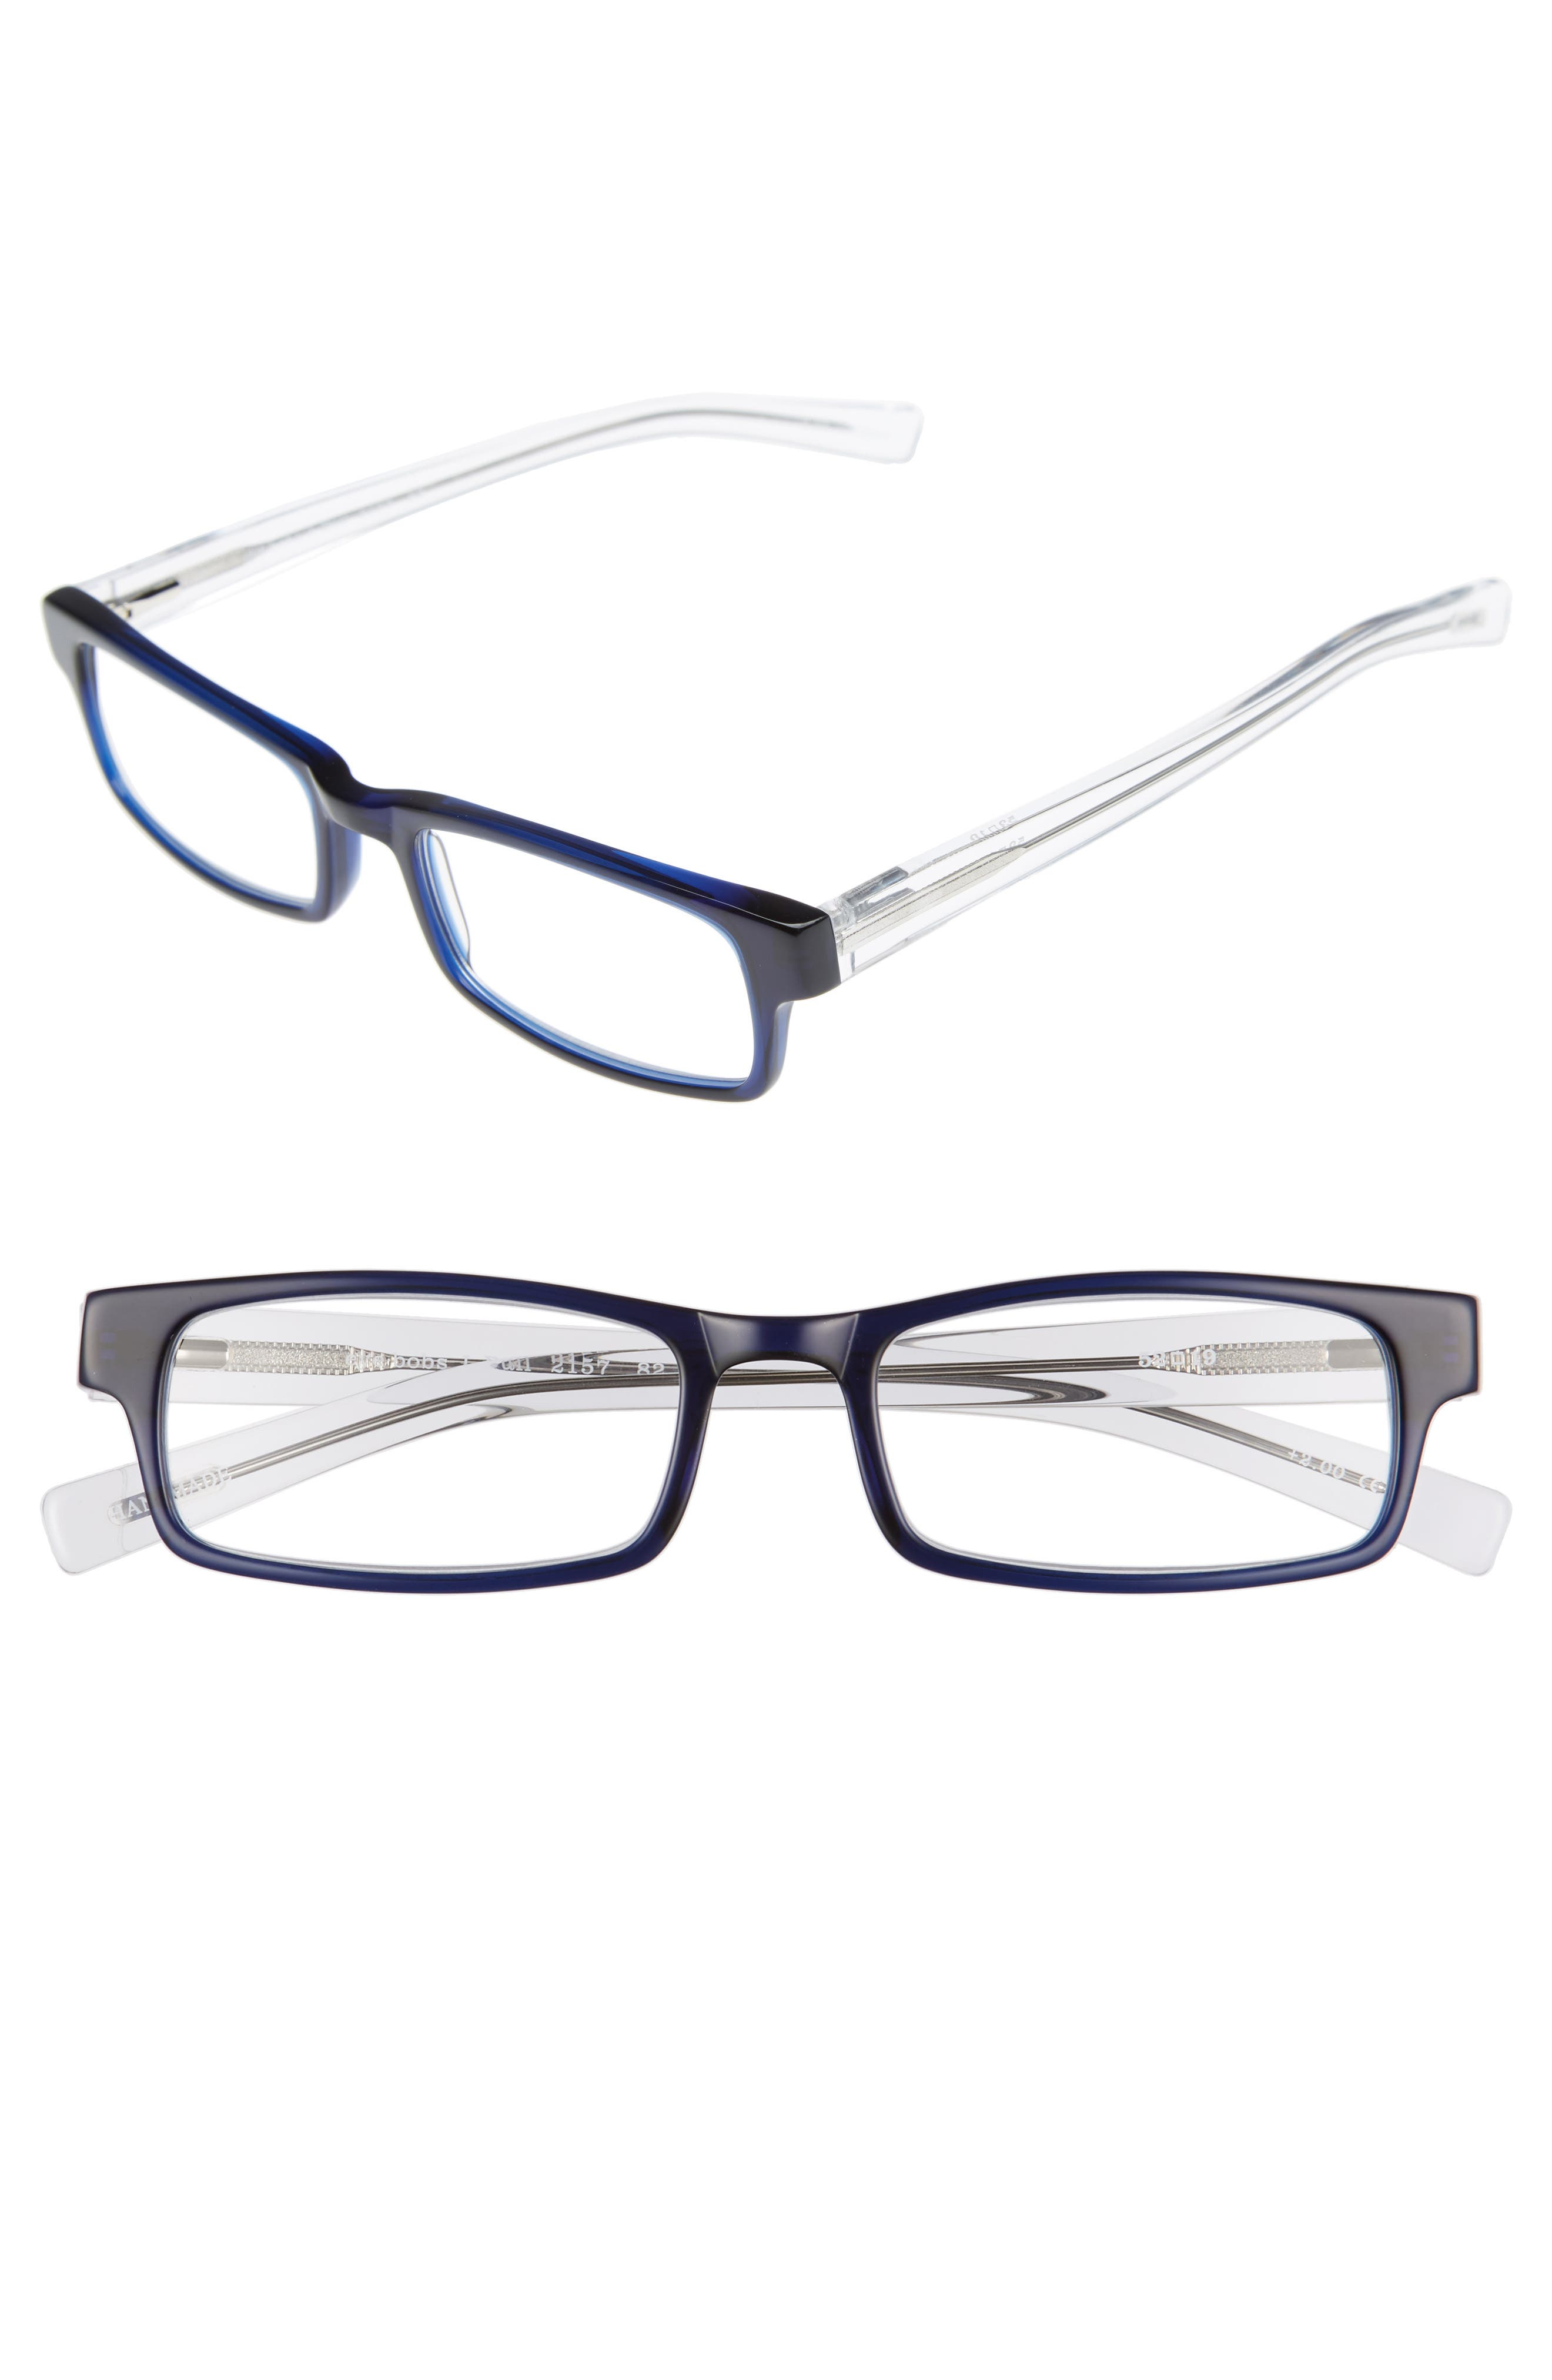 I Ball 52mm Reading Glasses,                         Main,                         color, Navy With Clear